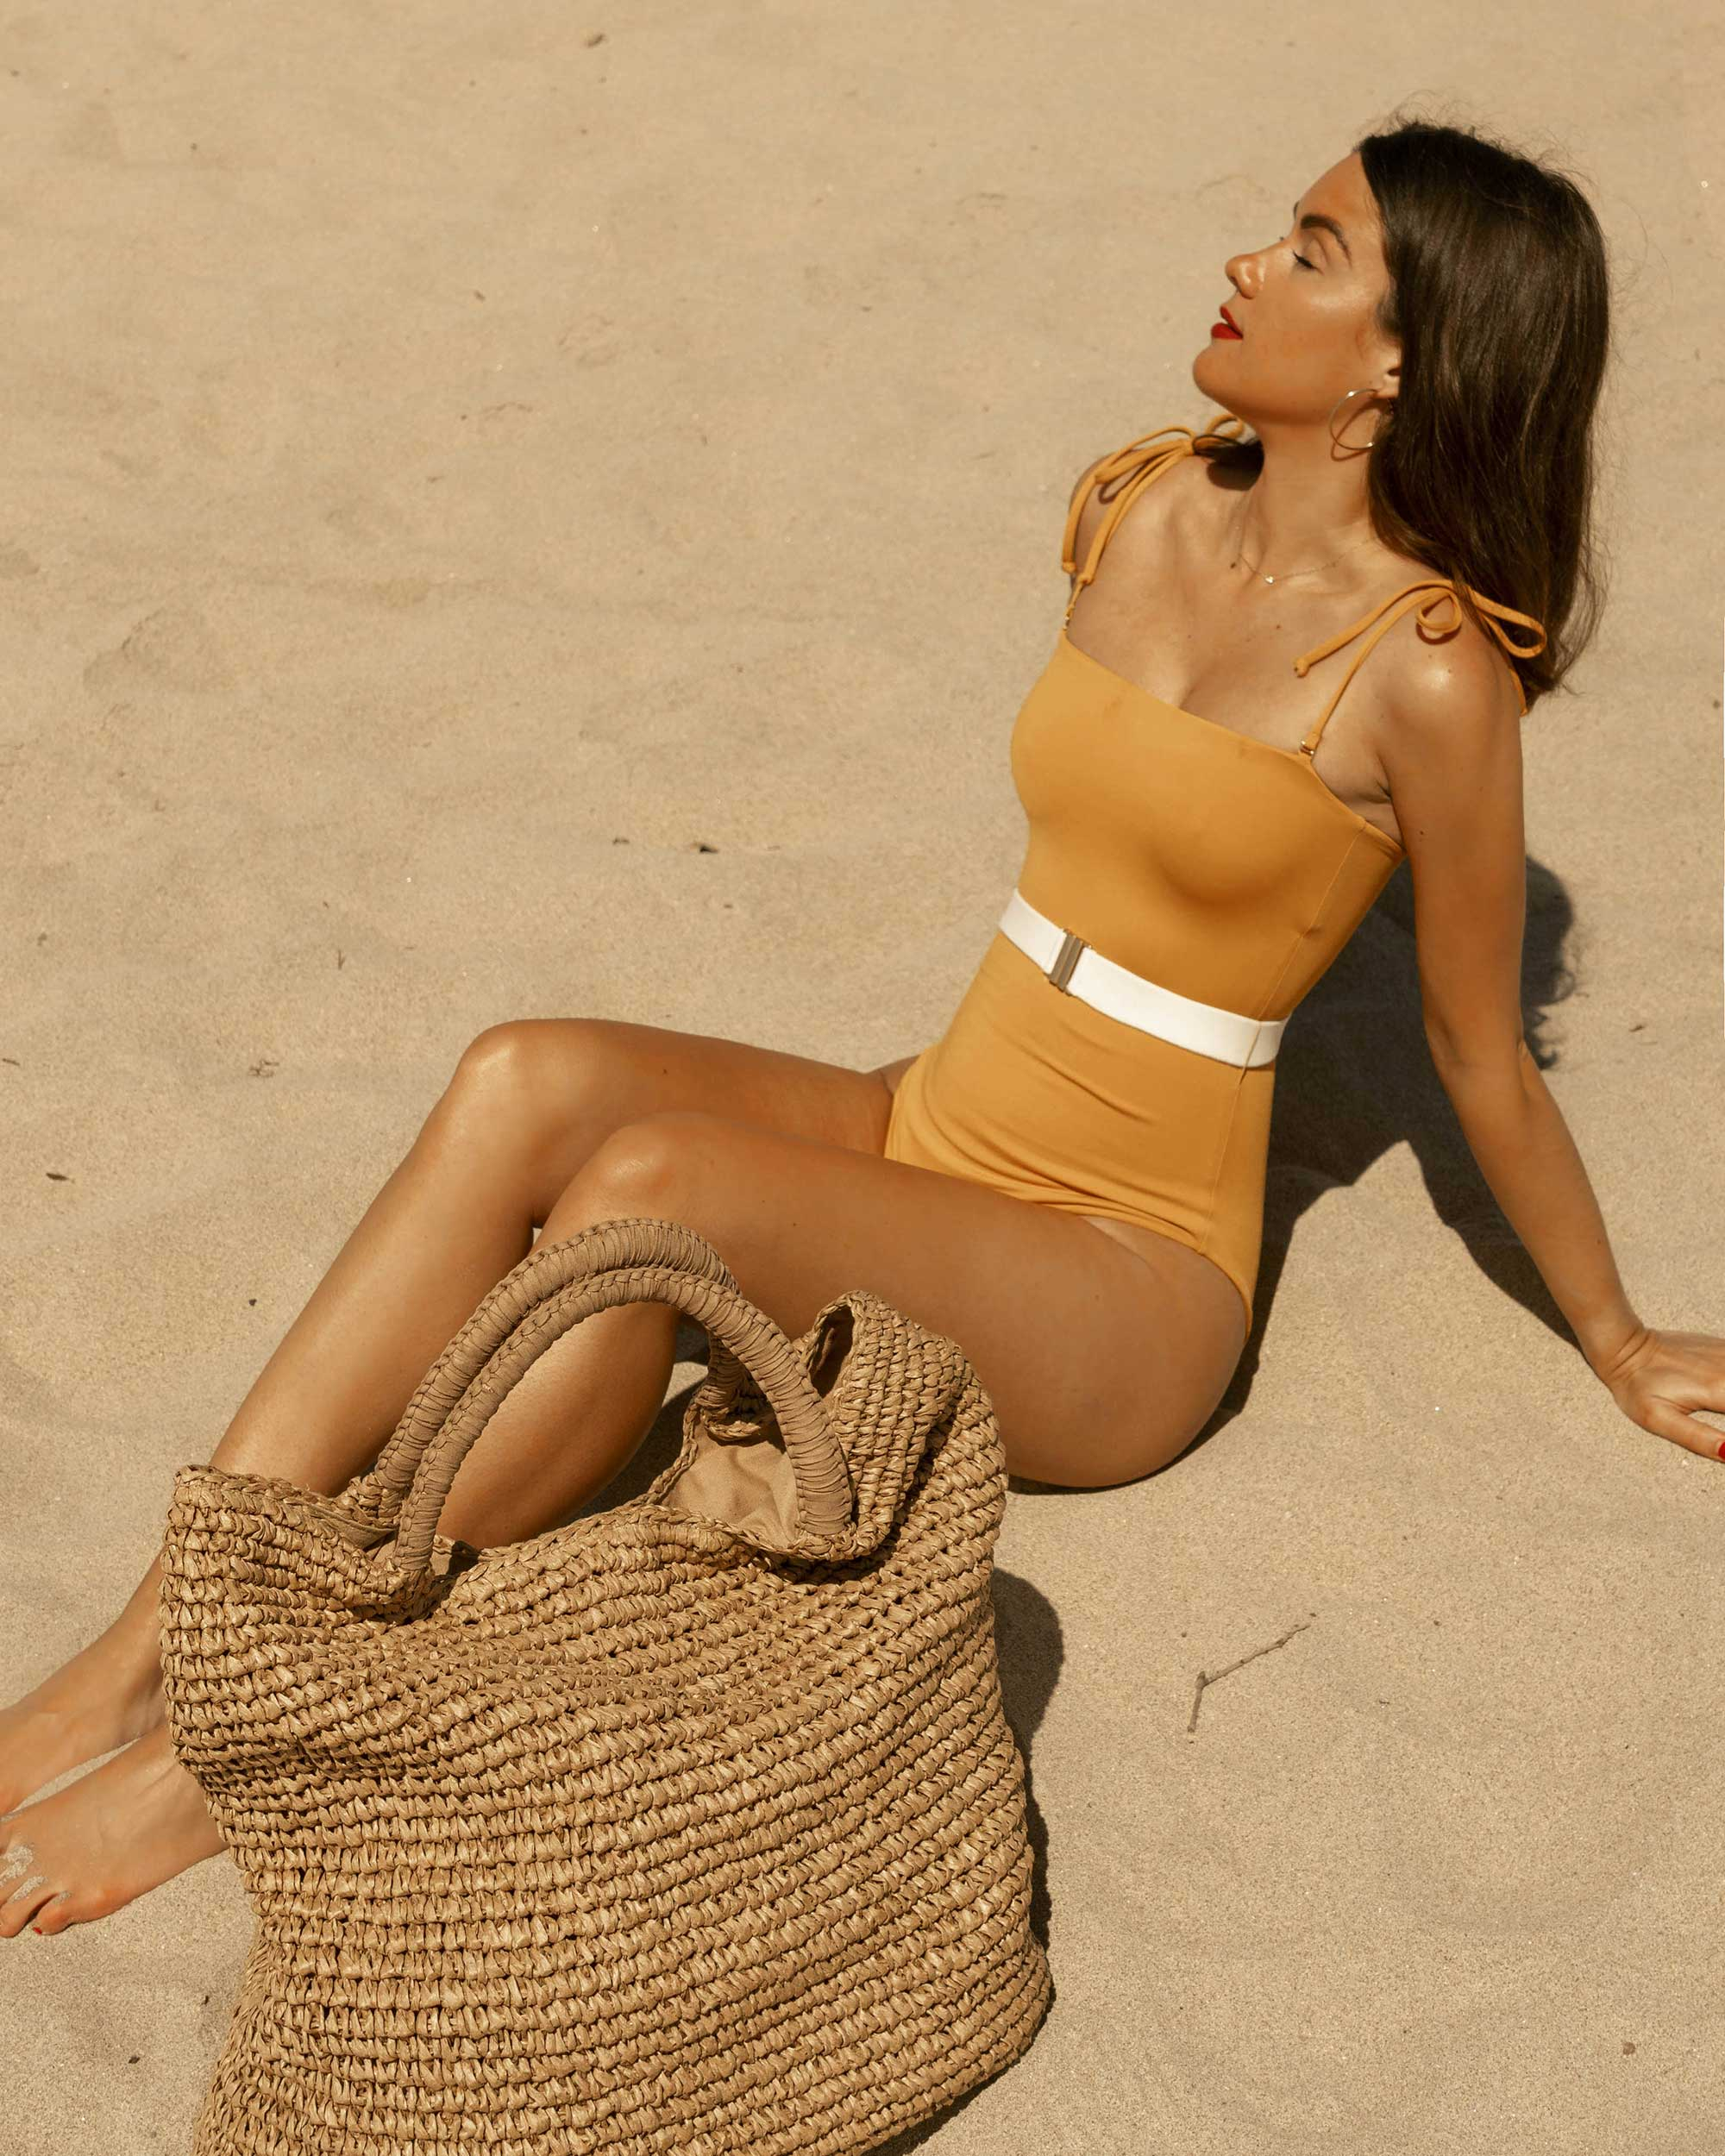 Beach Bound in California - LSpace yellow one piece swimsuit with belt and Fallon & Royce Mel straw oversized straw tote beach bag in Newport Beach, California for the perfect beach outfit